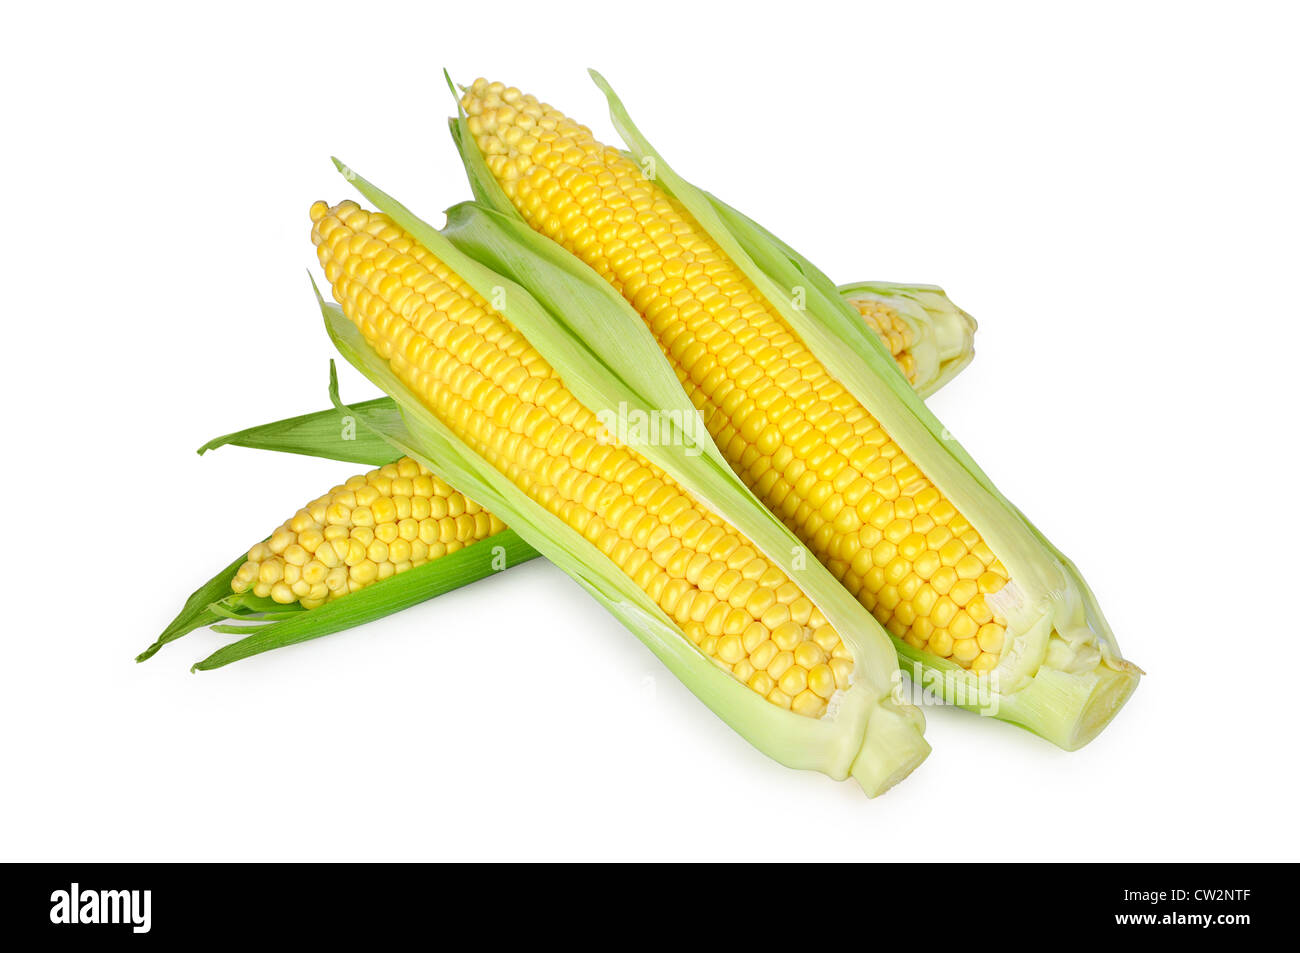 An ear of corn isolated on a white background - Stock Image